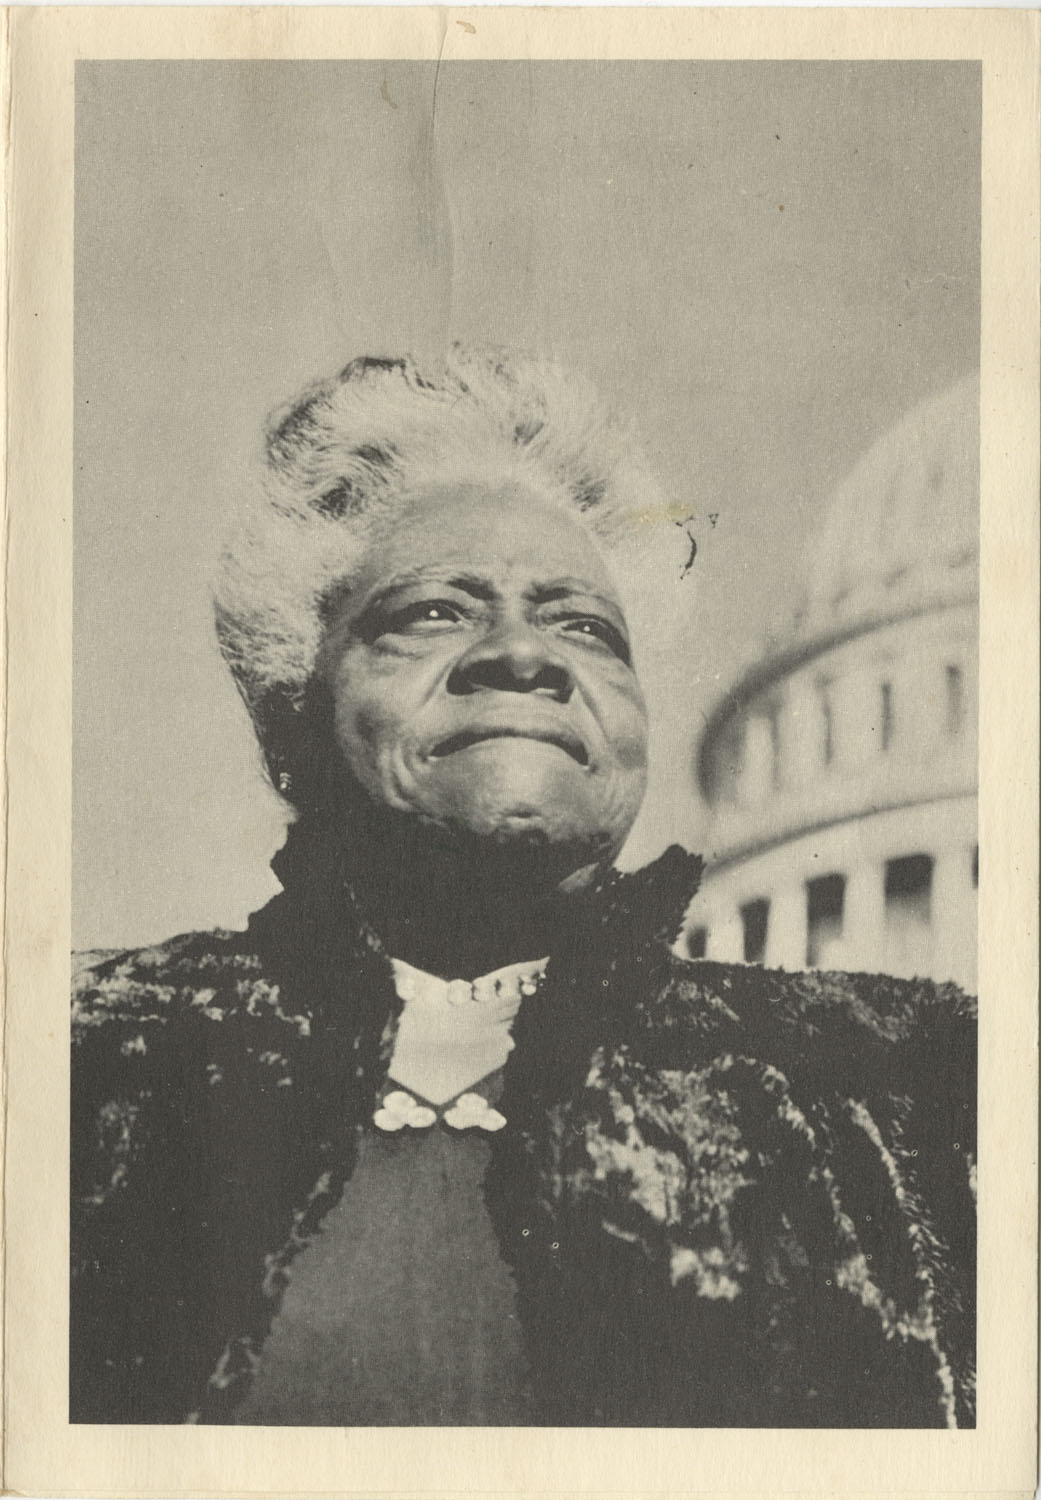 Invitation to Mary McLeod Bethune Memorial, July 19, 1974